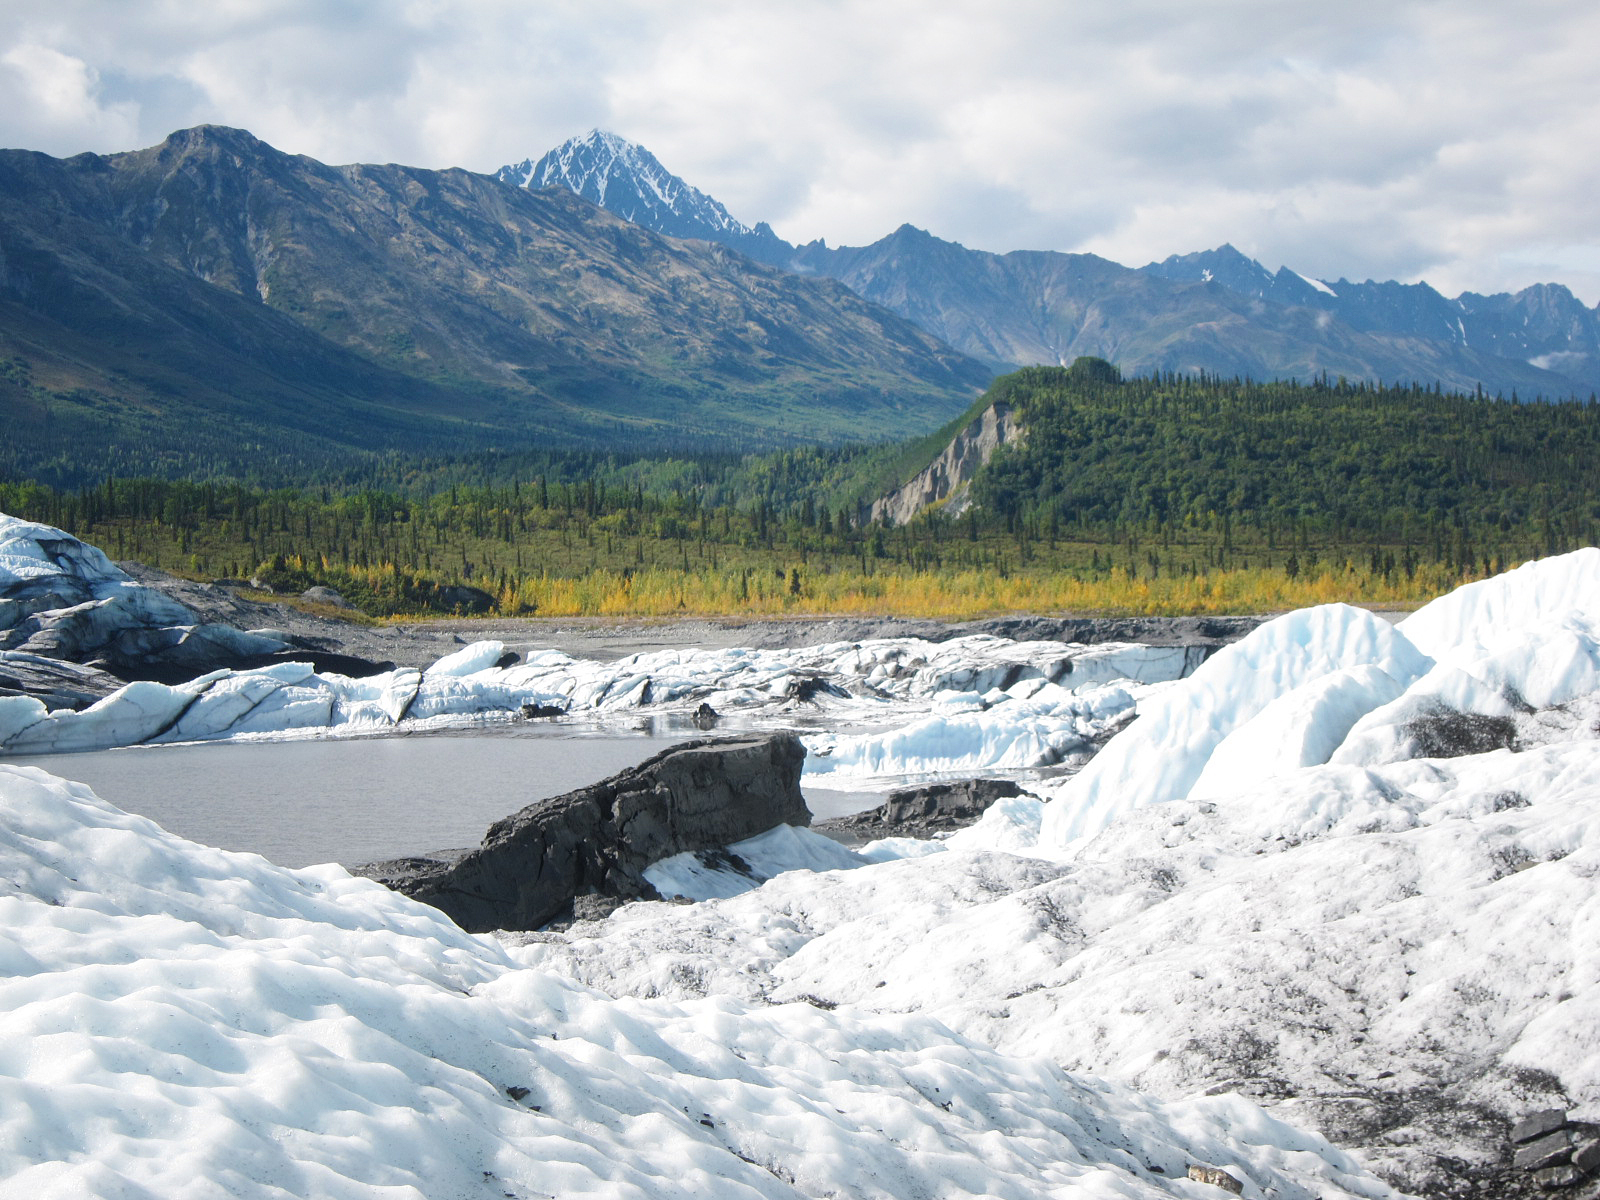 Matanuska glacier, Anchorage